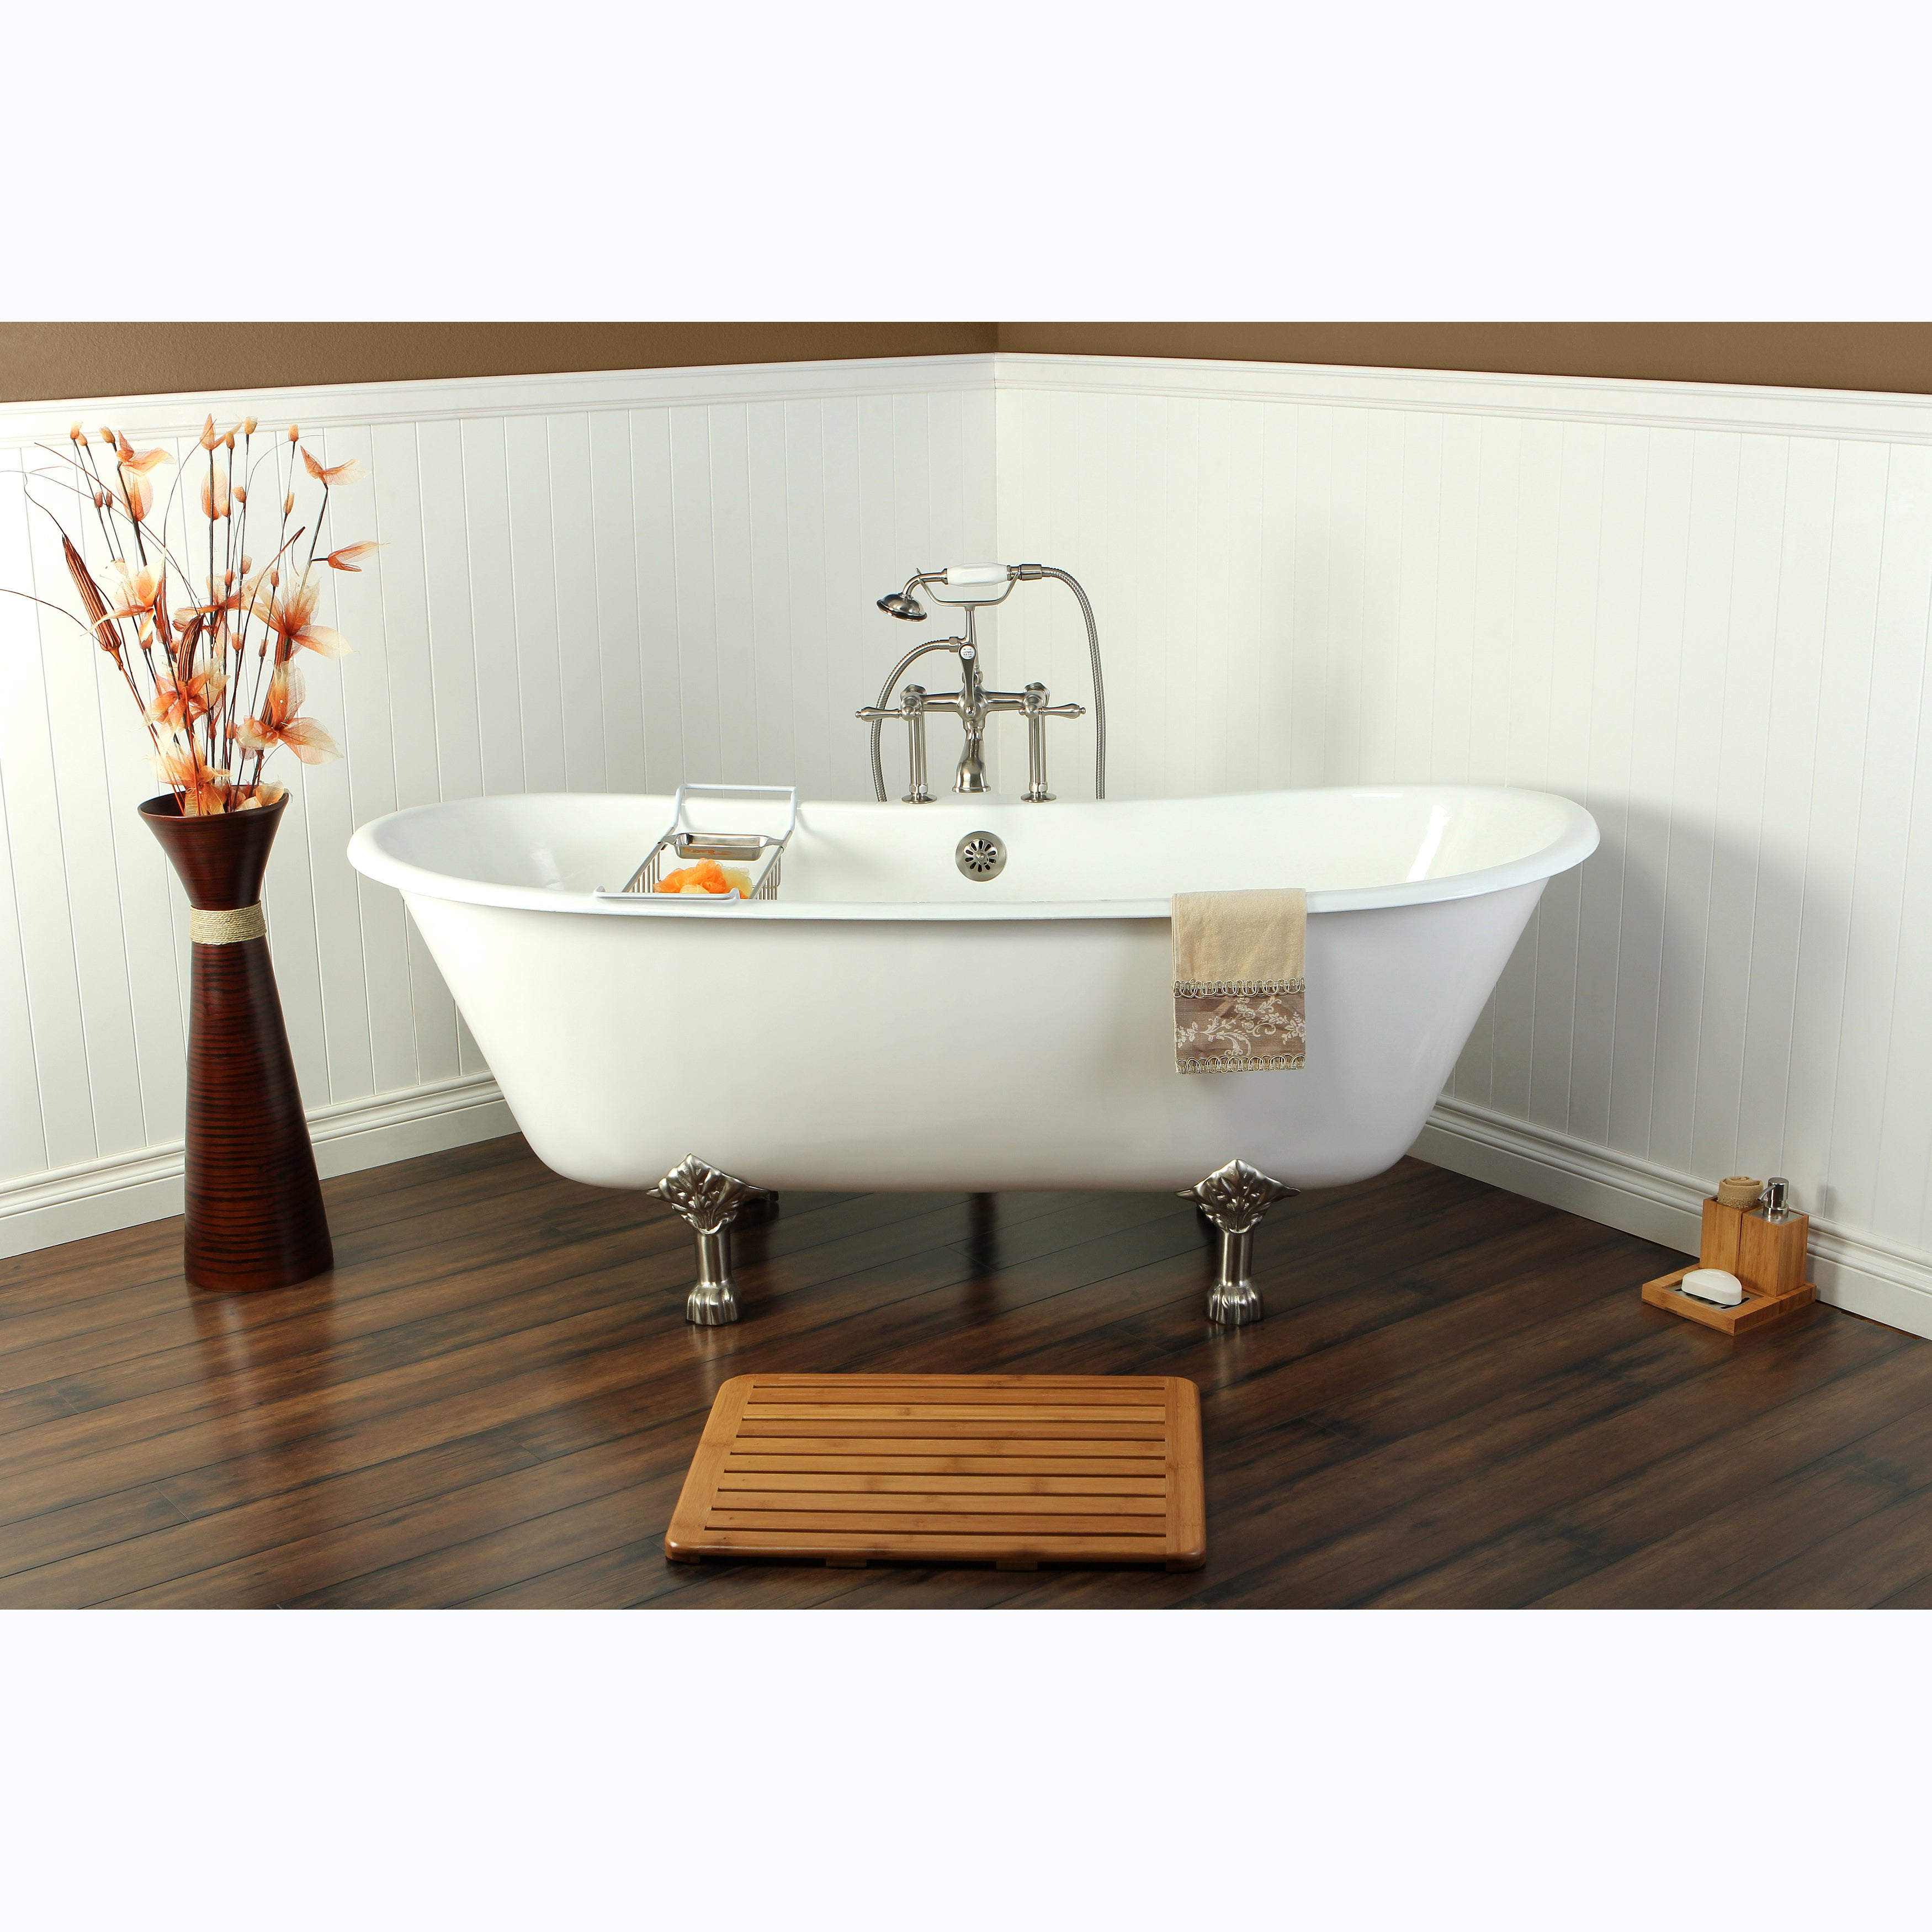 free white soho bathtub in product garden whirlpools home skirted today tub x shipping atlantis front overstock